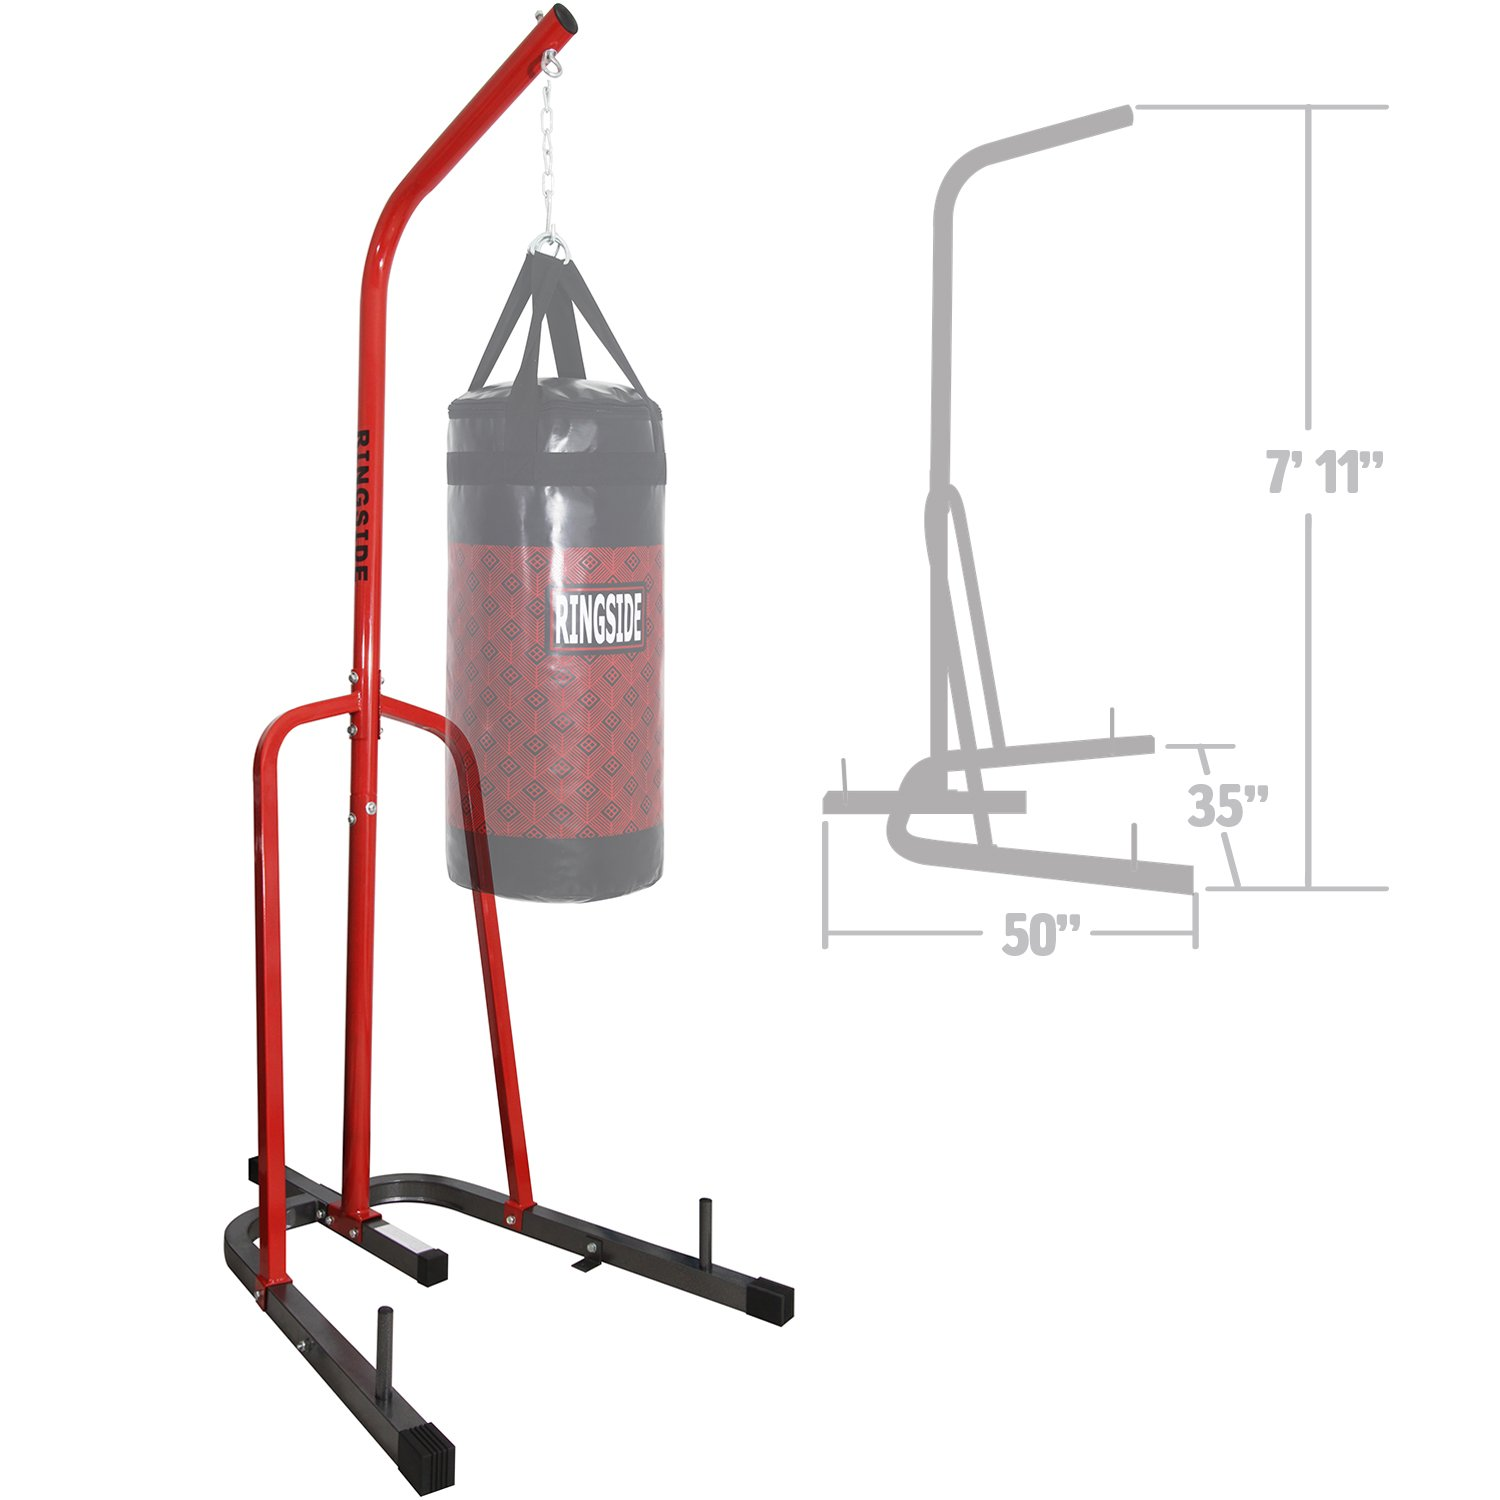 Ringside Prime Free – MMA Heavy Bag Stand